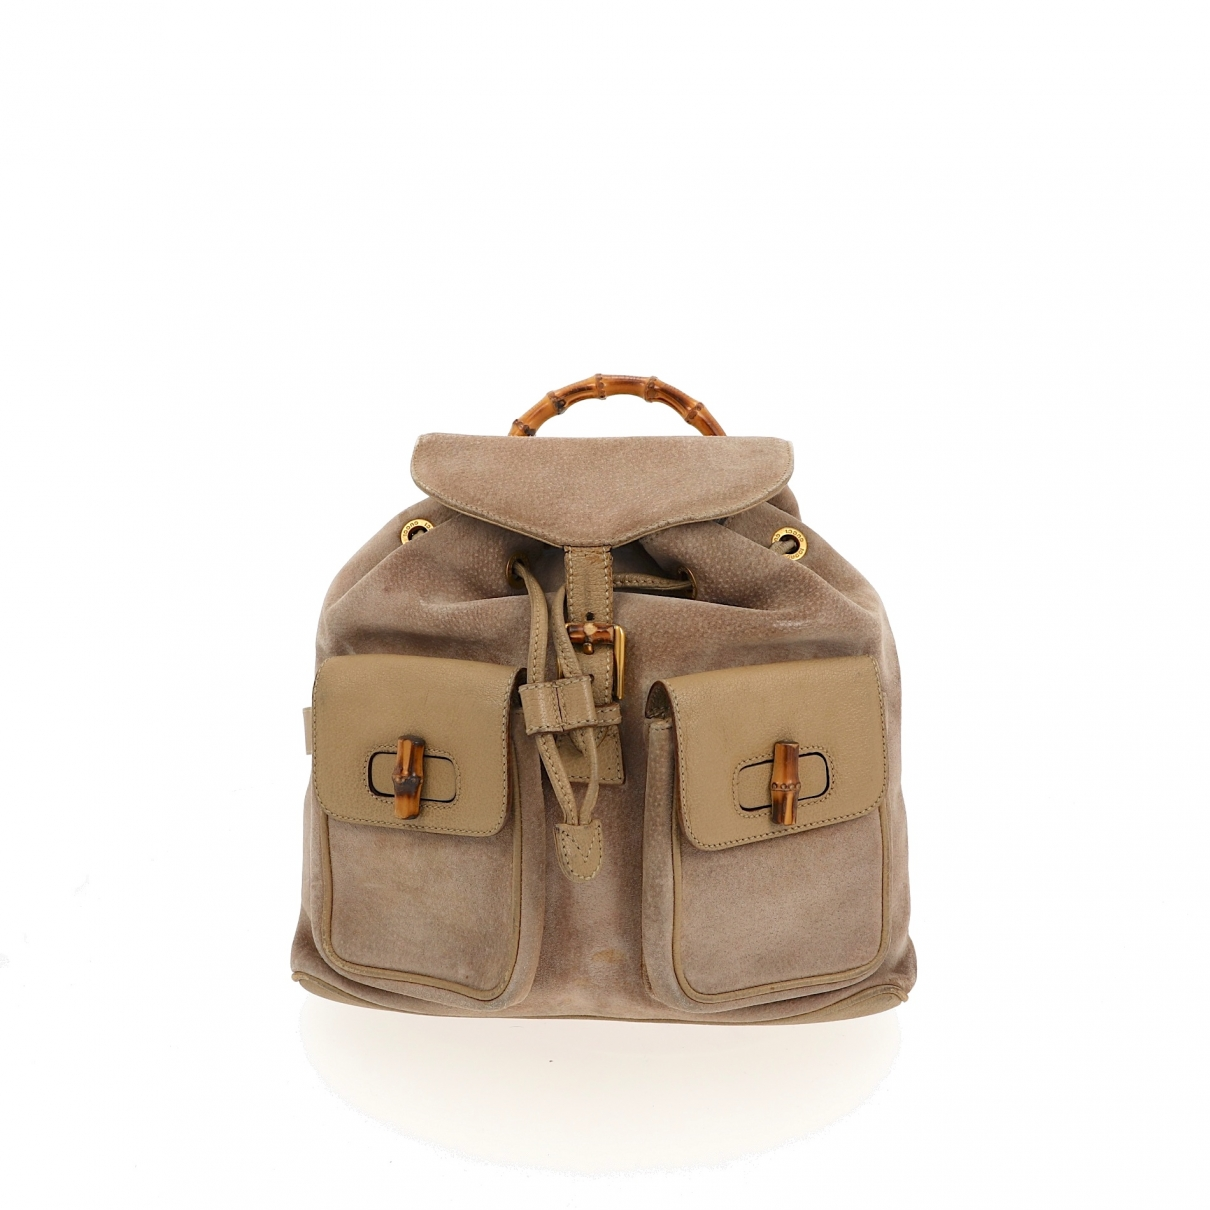 Gucci Bamboo Beige Suede backpack for Women \N